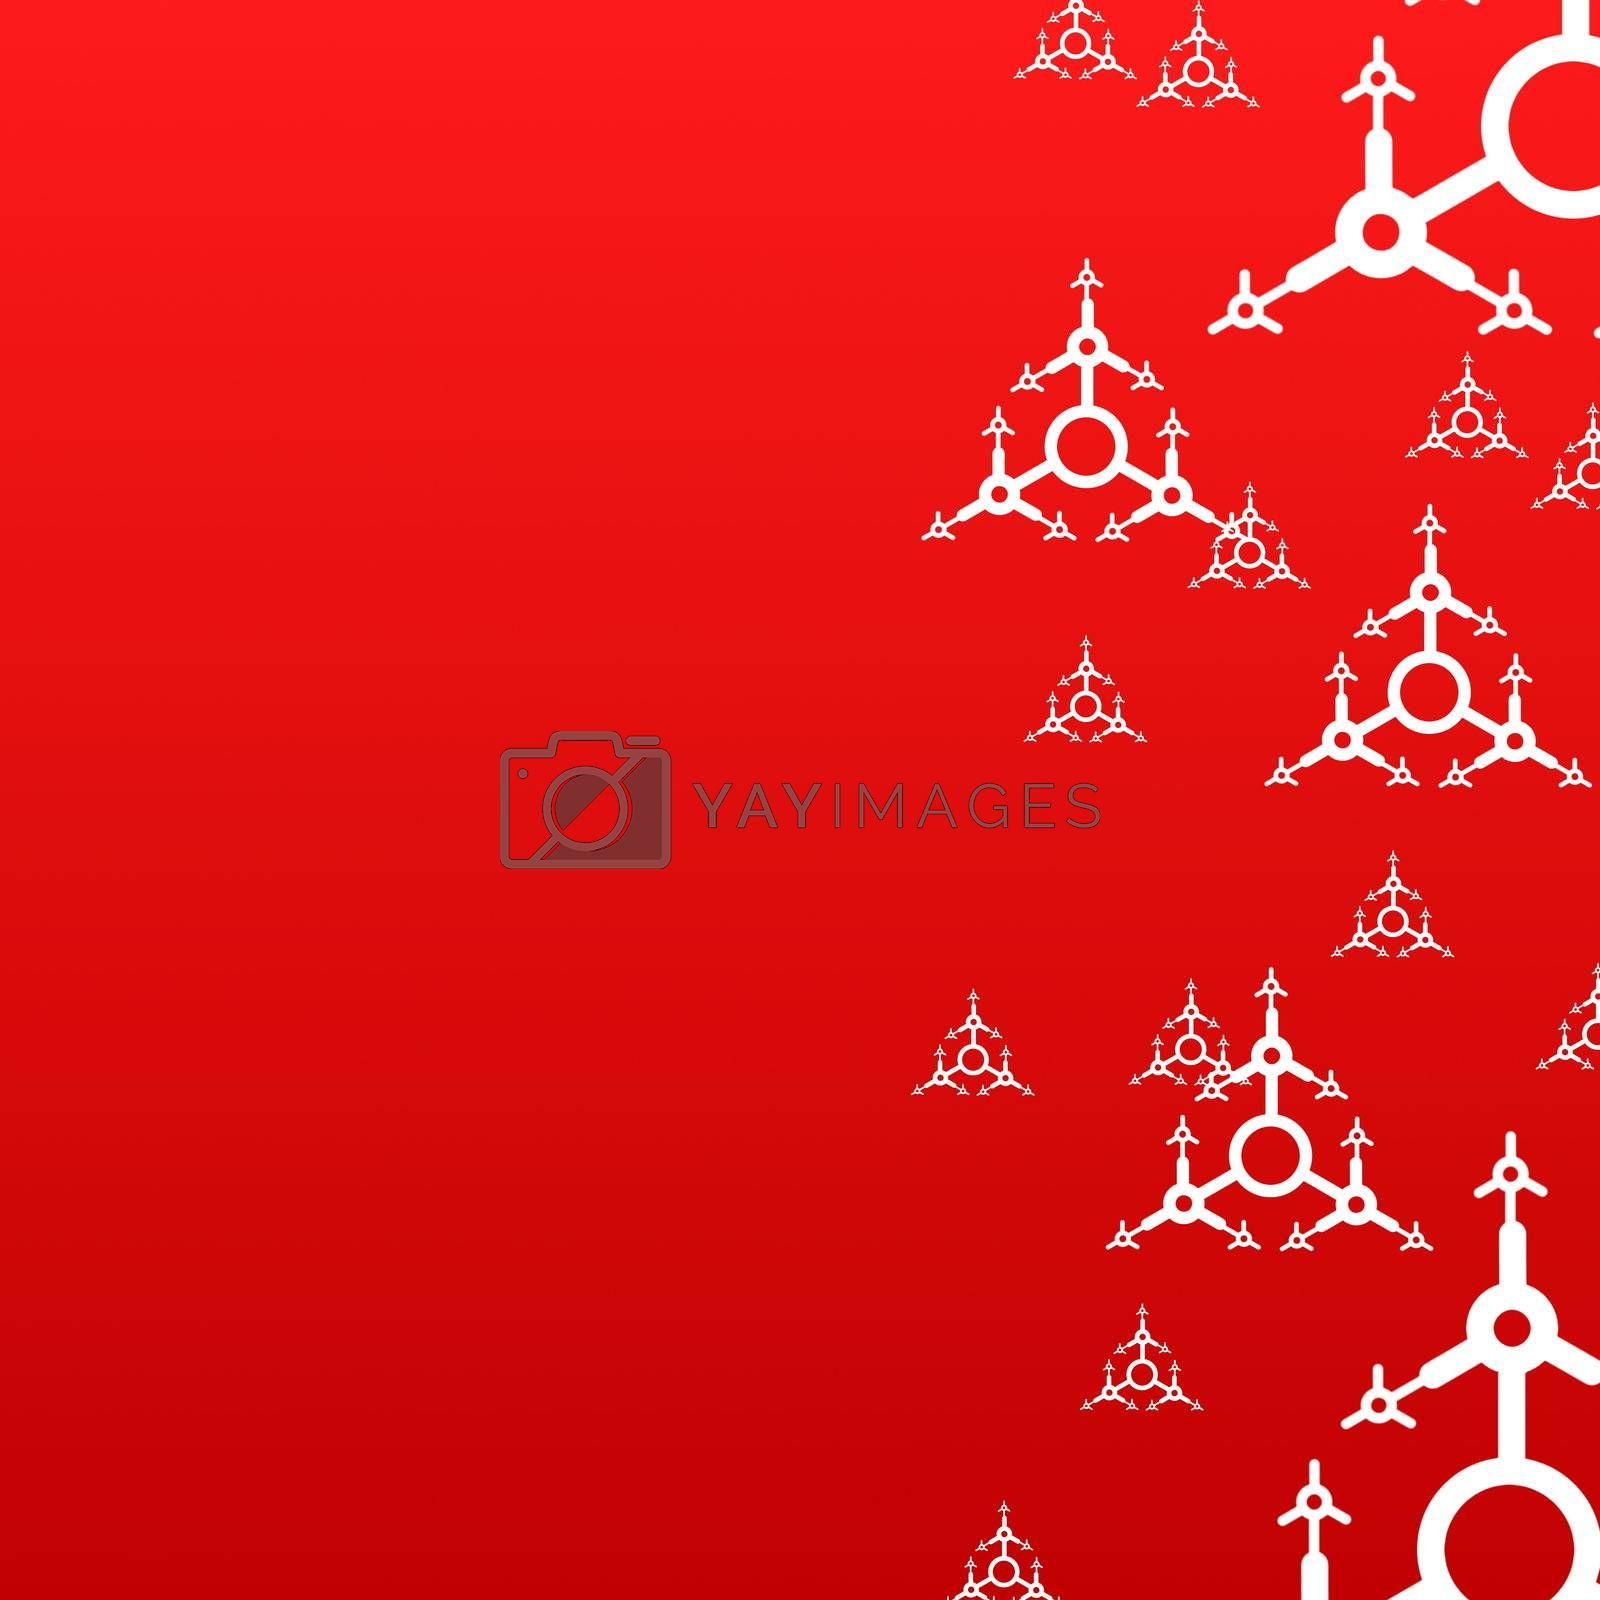 red xmas background with copyspace for text message